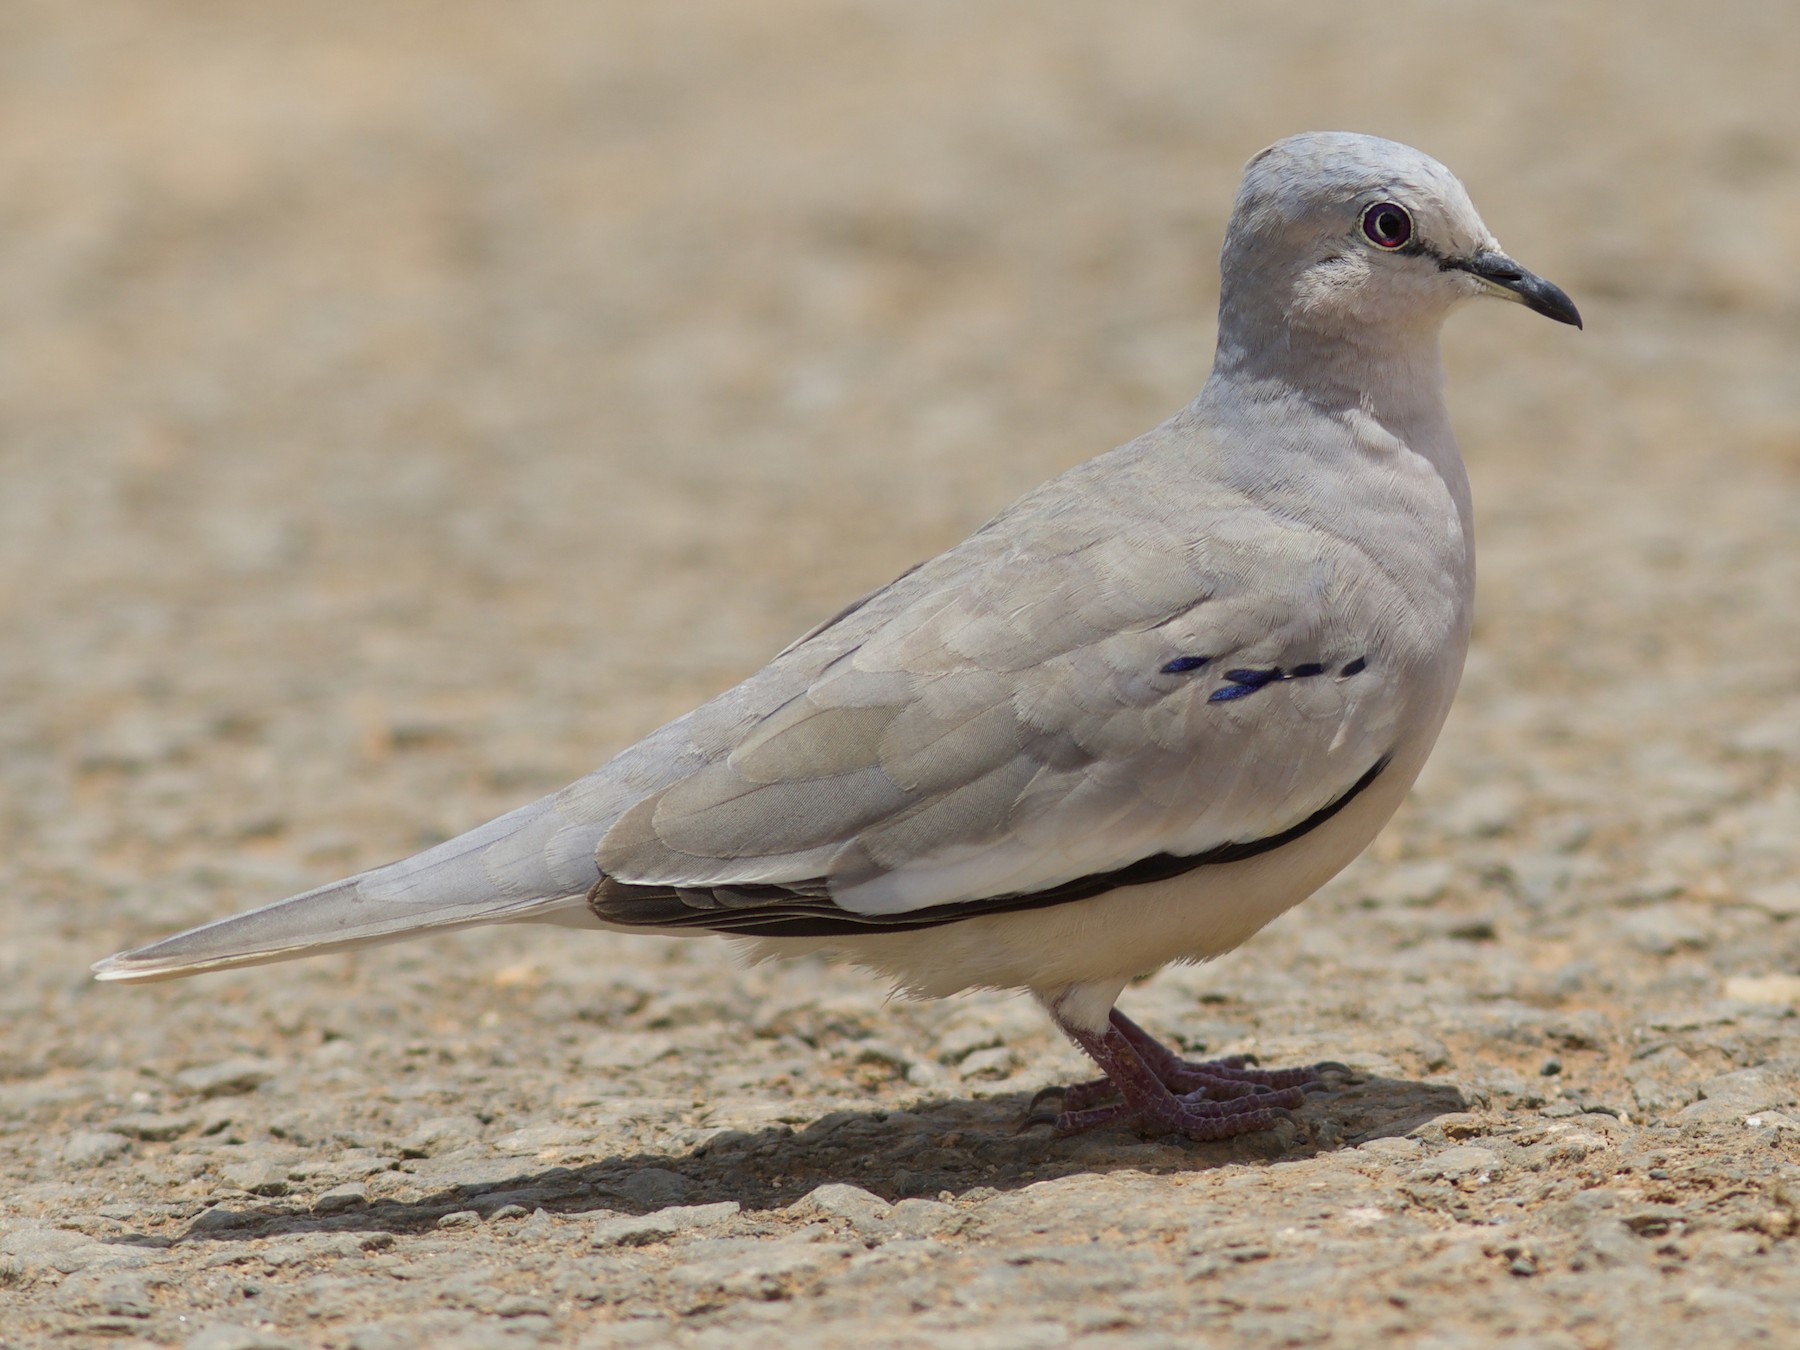 Picui Ground Dove - Luiz Matos